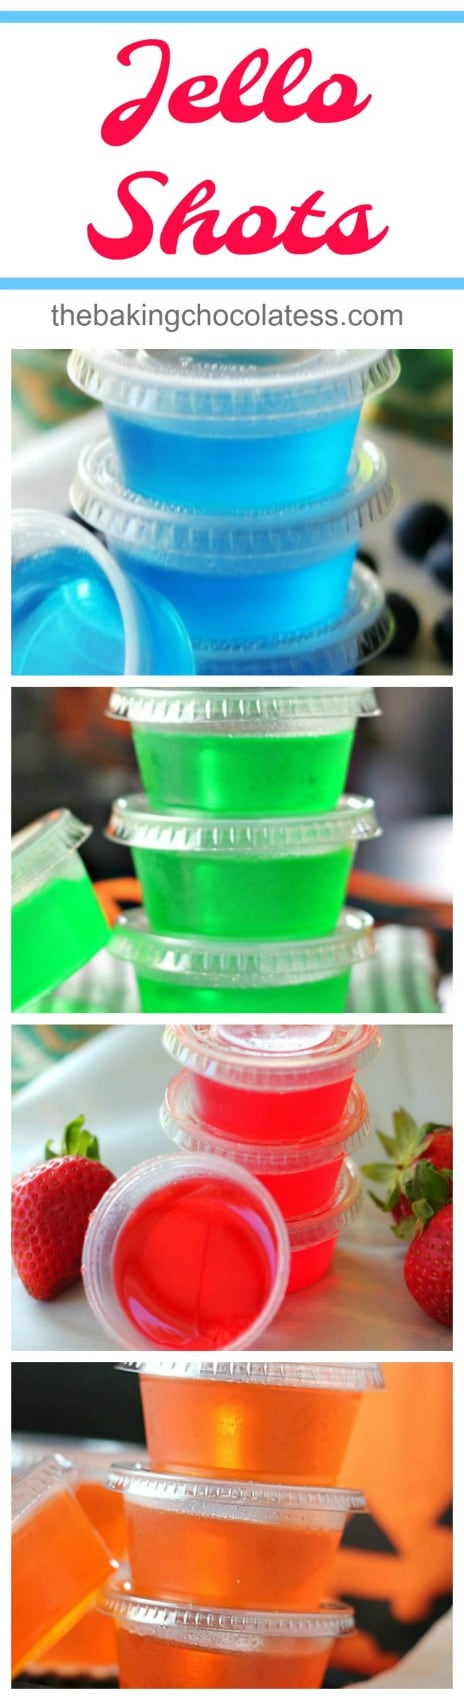 Jell-O Shots - Jell-O shots are easy to make. All you do is addone small package of your favorite Jell-Oto1 cup boiling water or juice, whisking well and then add 1 cup of your choice of alcohol.  It's Party Time and fun times!